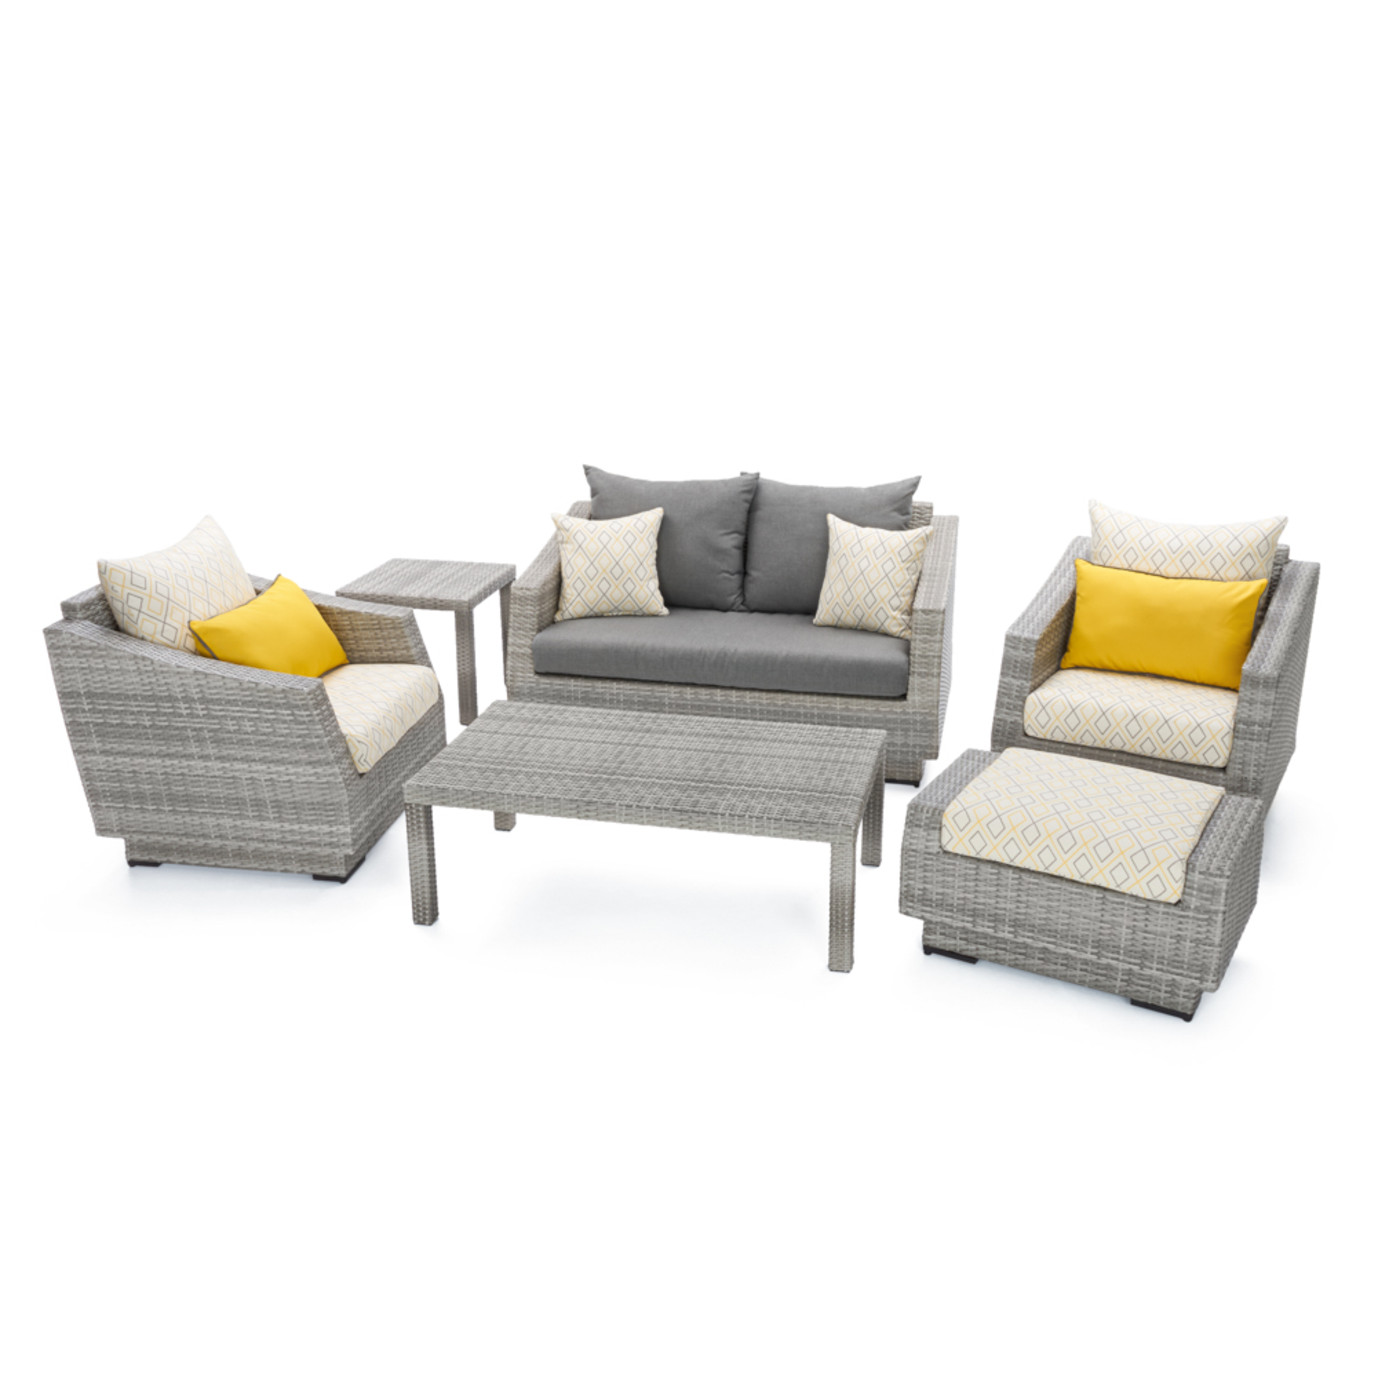 Cannes™ Design 6pc Love & Club Seating Set - Sunflower Yellow